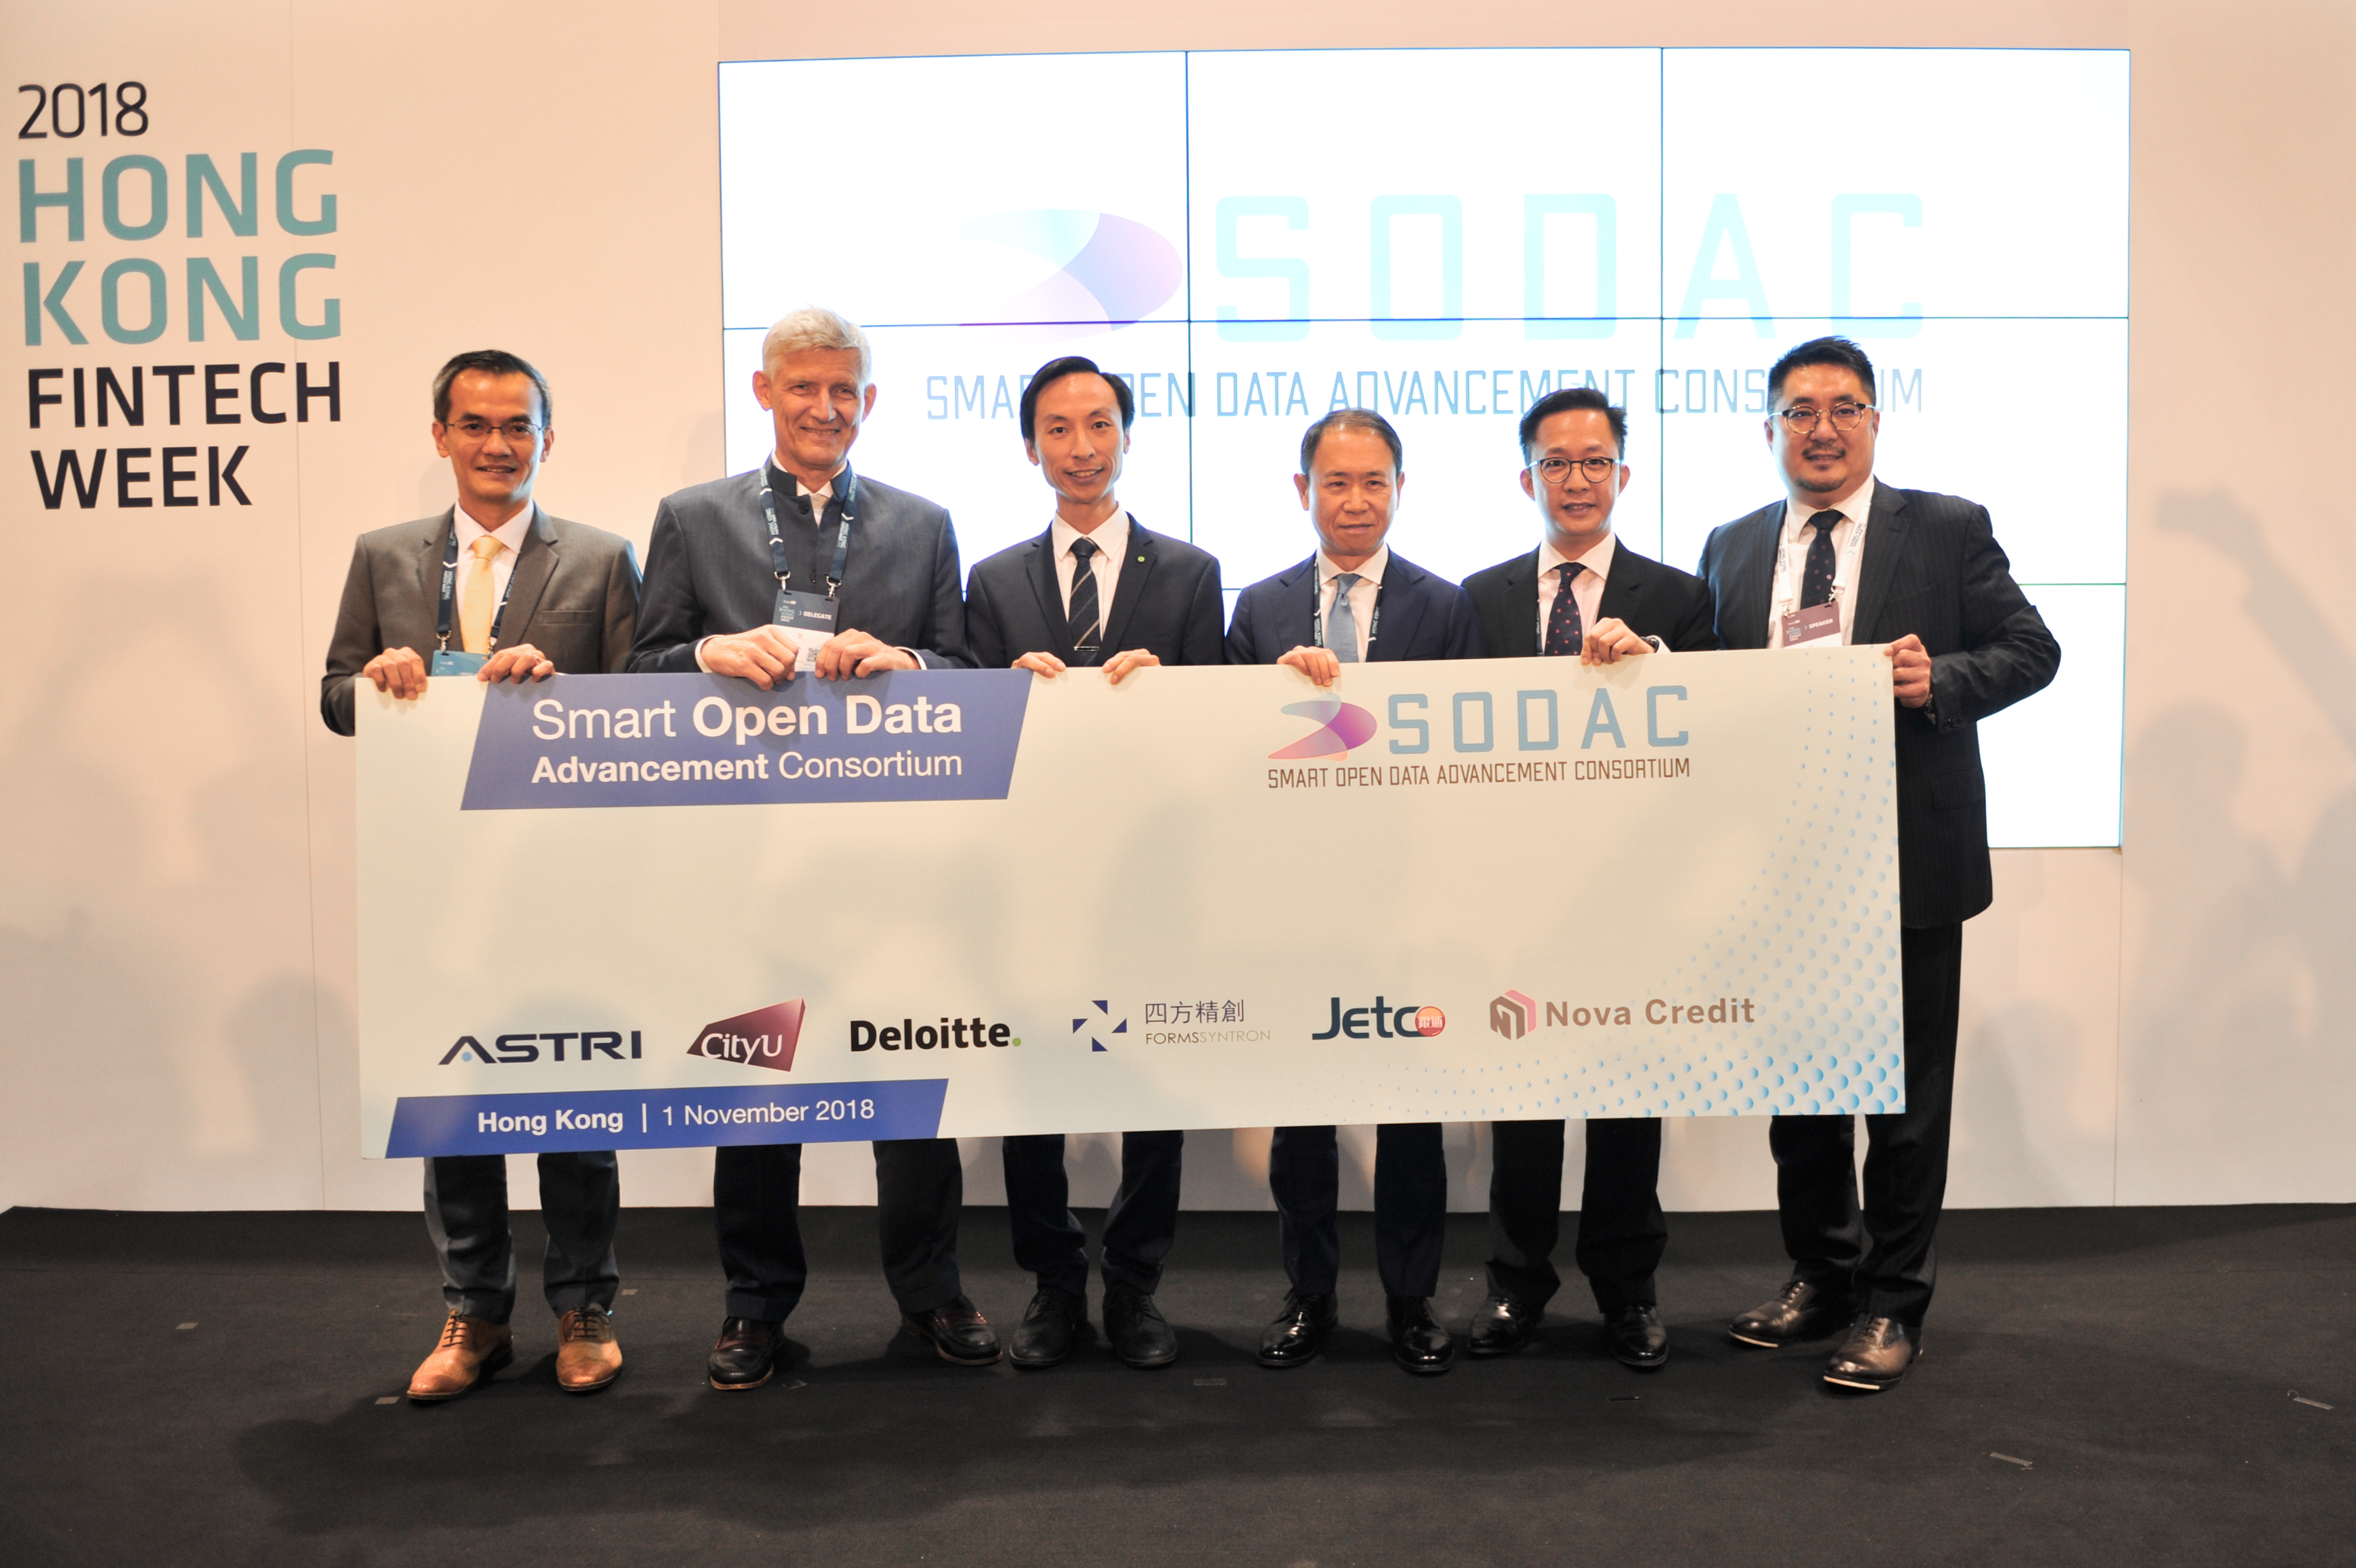 Hong Kong's first-ever Smart Open Data Advancement Consortium formed to unleash a new era of data-driven innovation